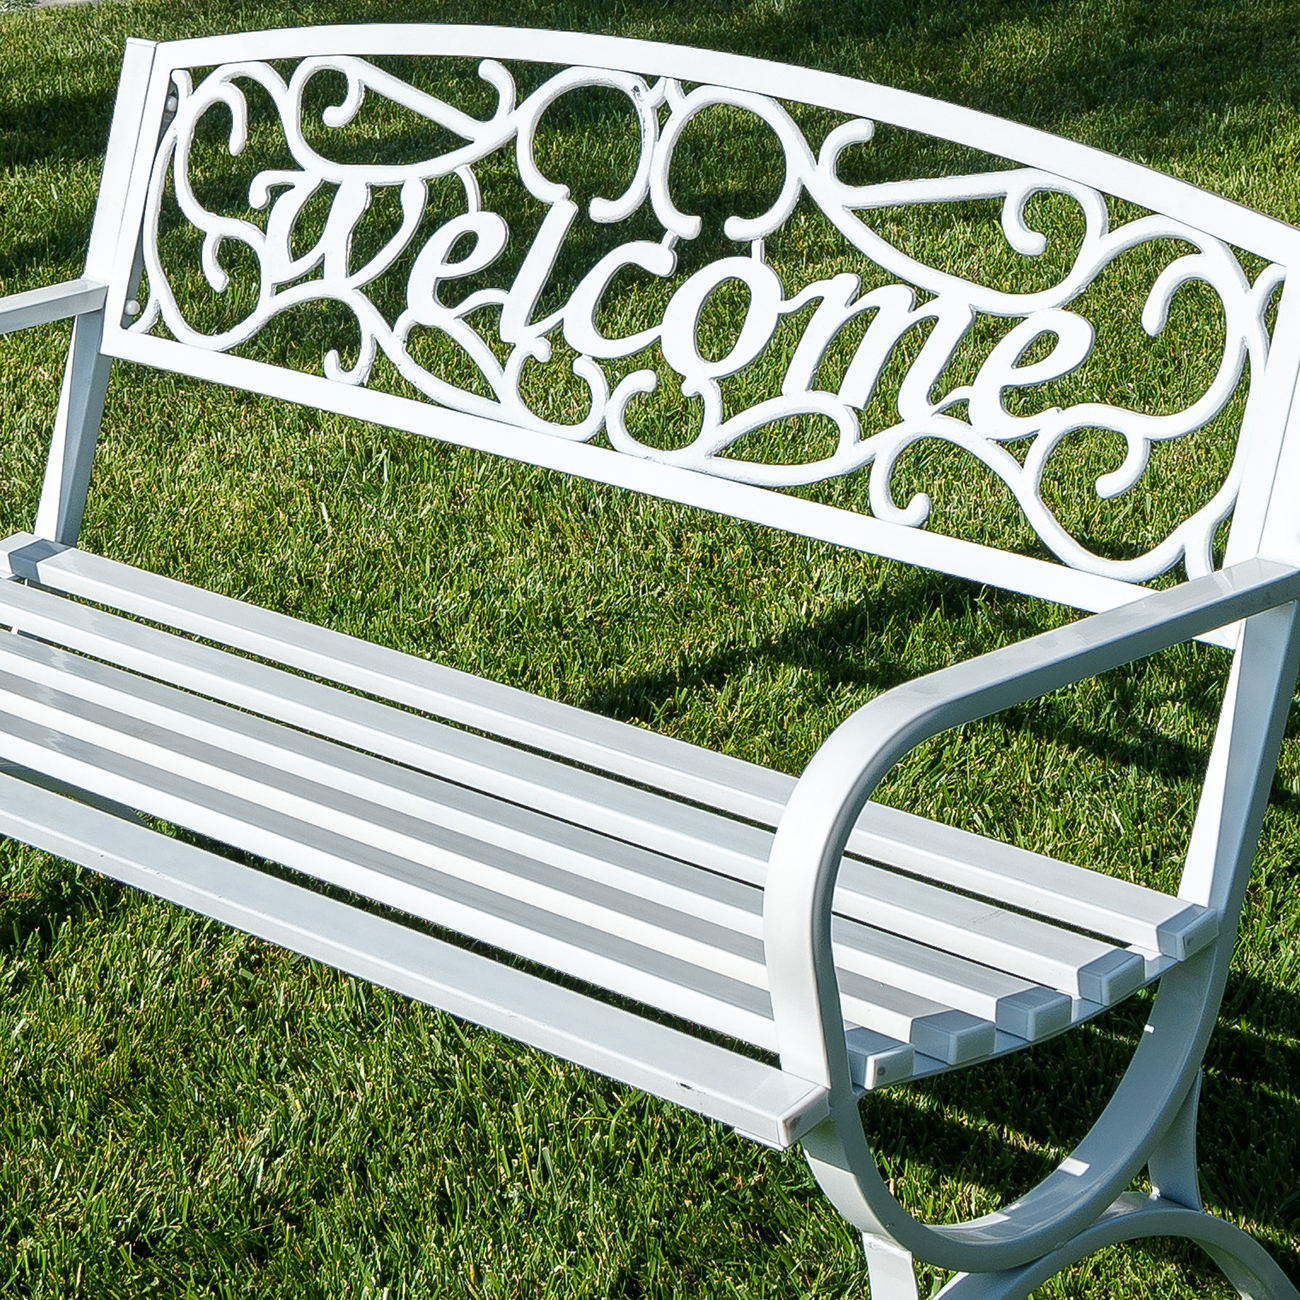 Elegance Welcome Design Outdoor Park Bench Yard Backyard 50 Inch Bronze White Ebay